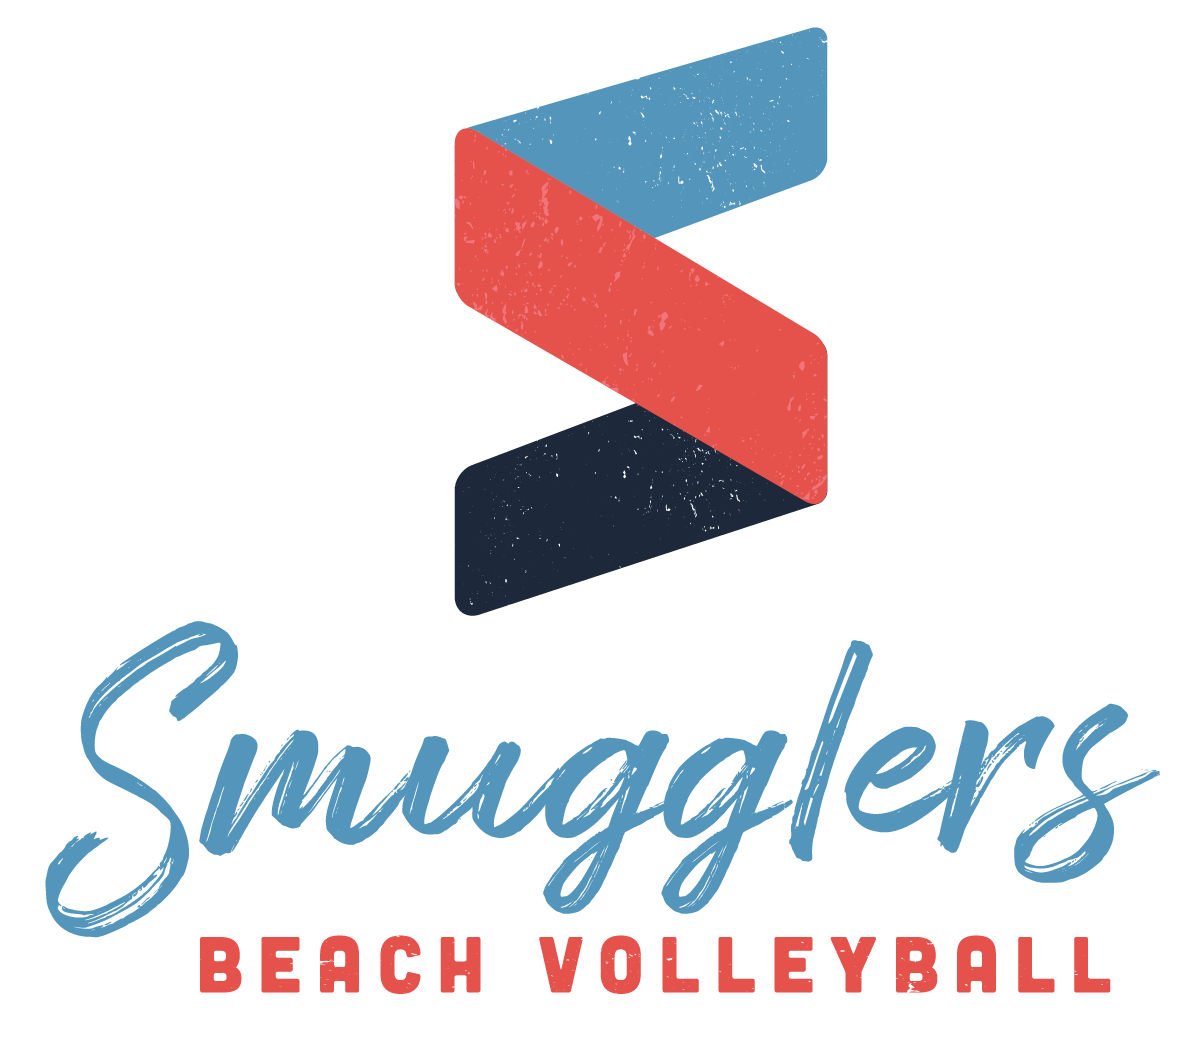 Smugglers Beach Volleyball